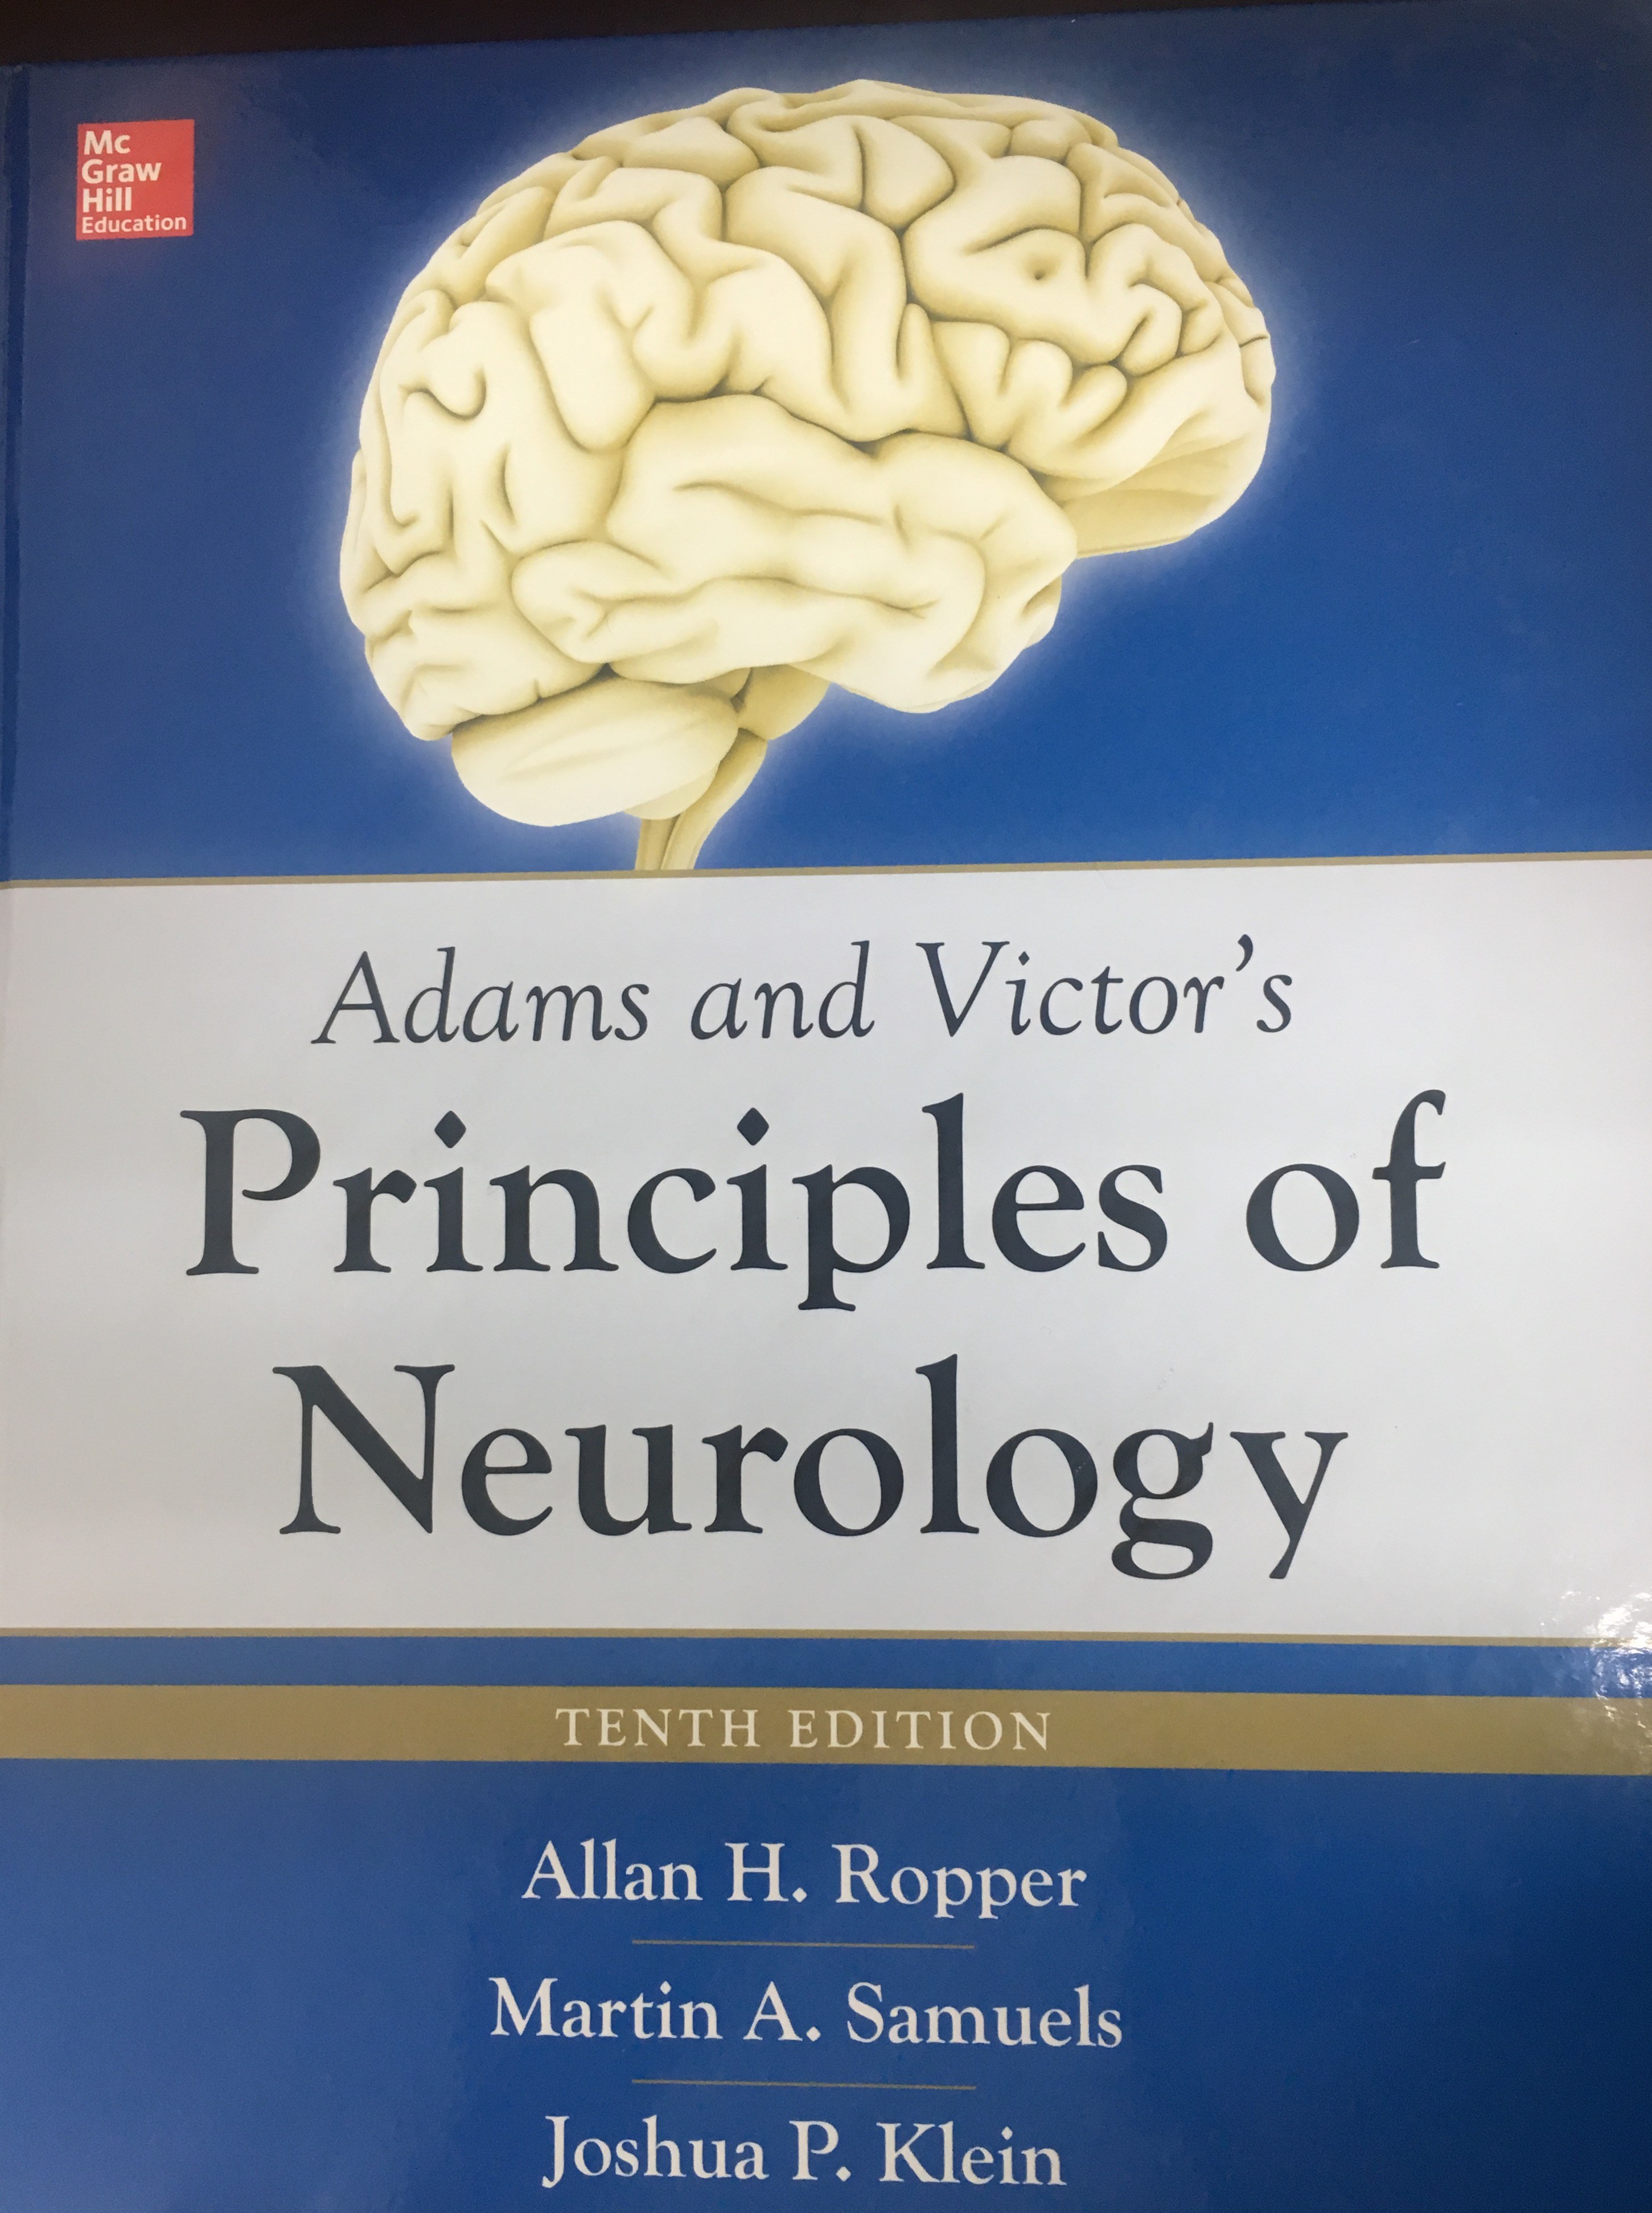 «Adams and Victor's Principles of Neurology »